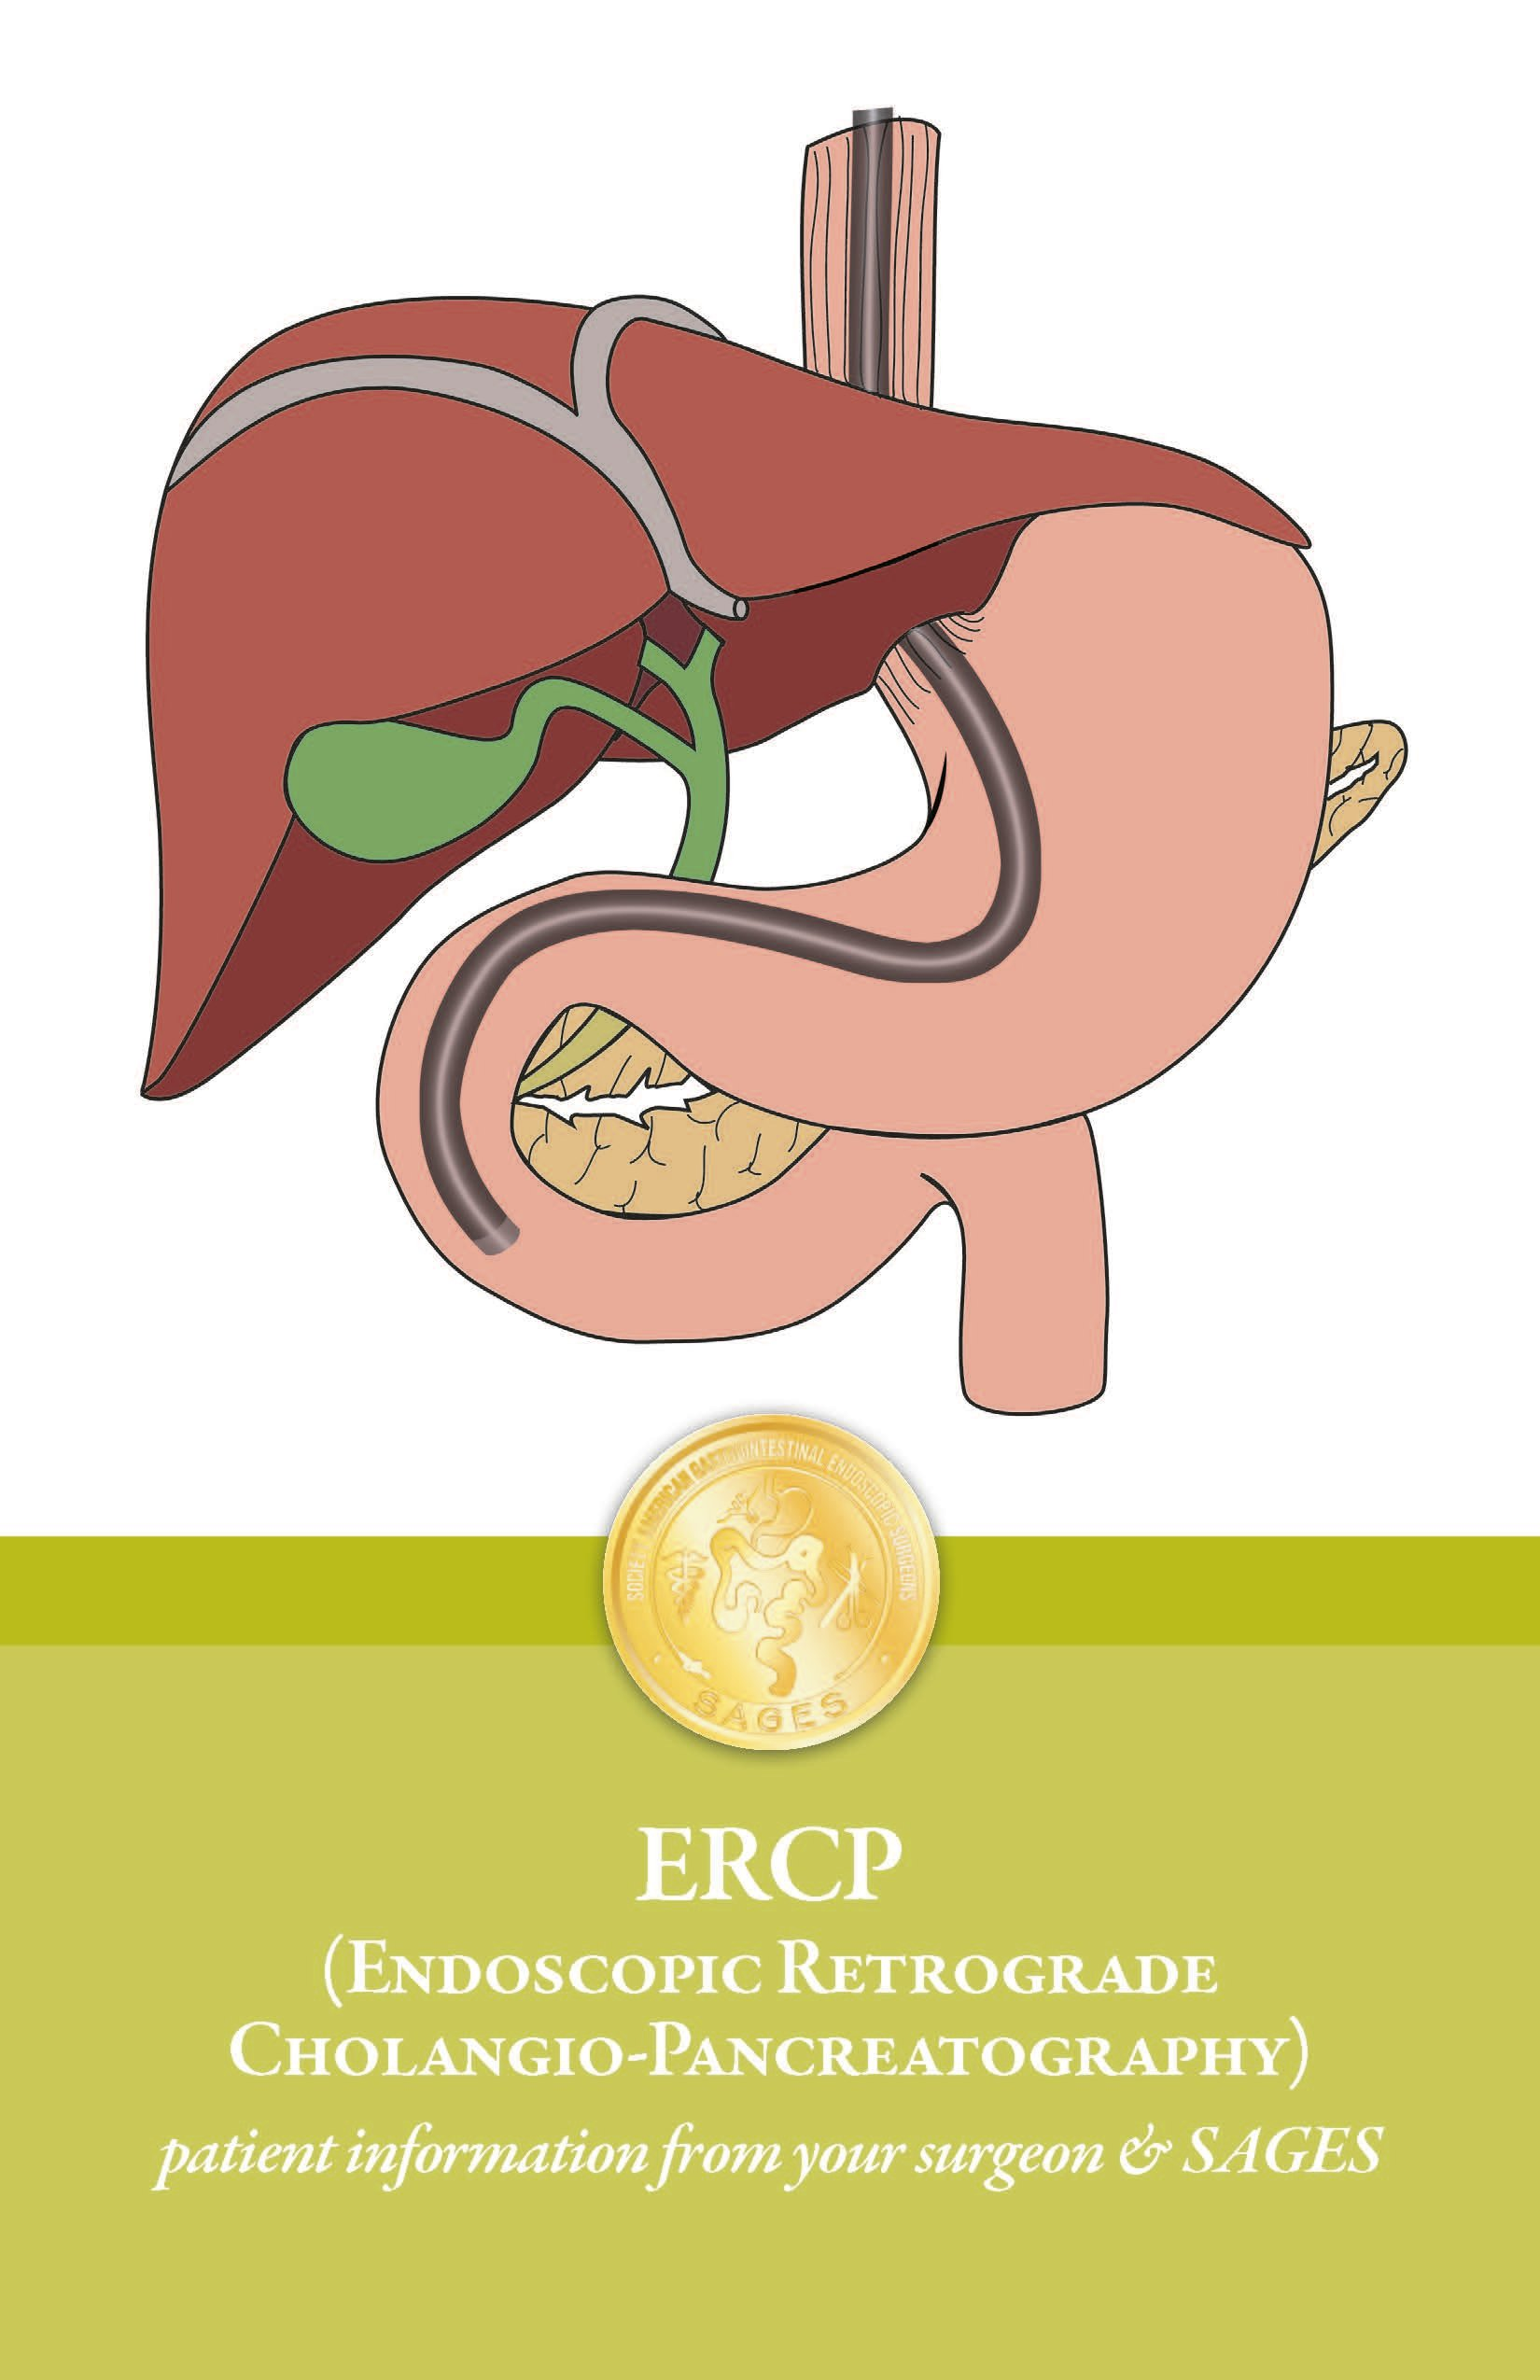 ERCP (Endoscopic Retrograde Cholangio-Pancreatography